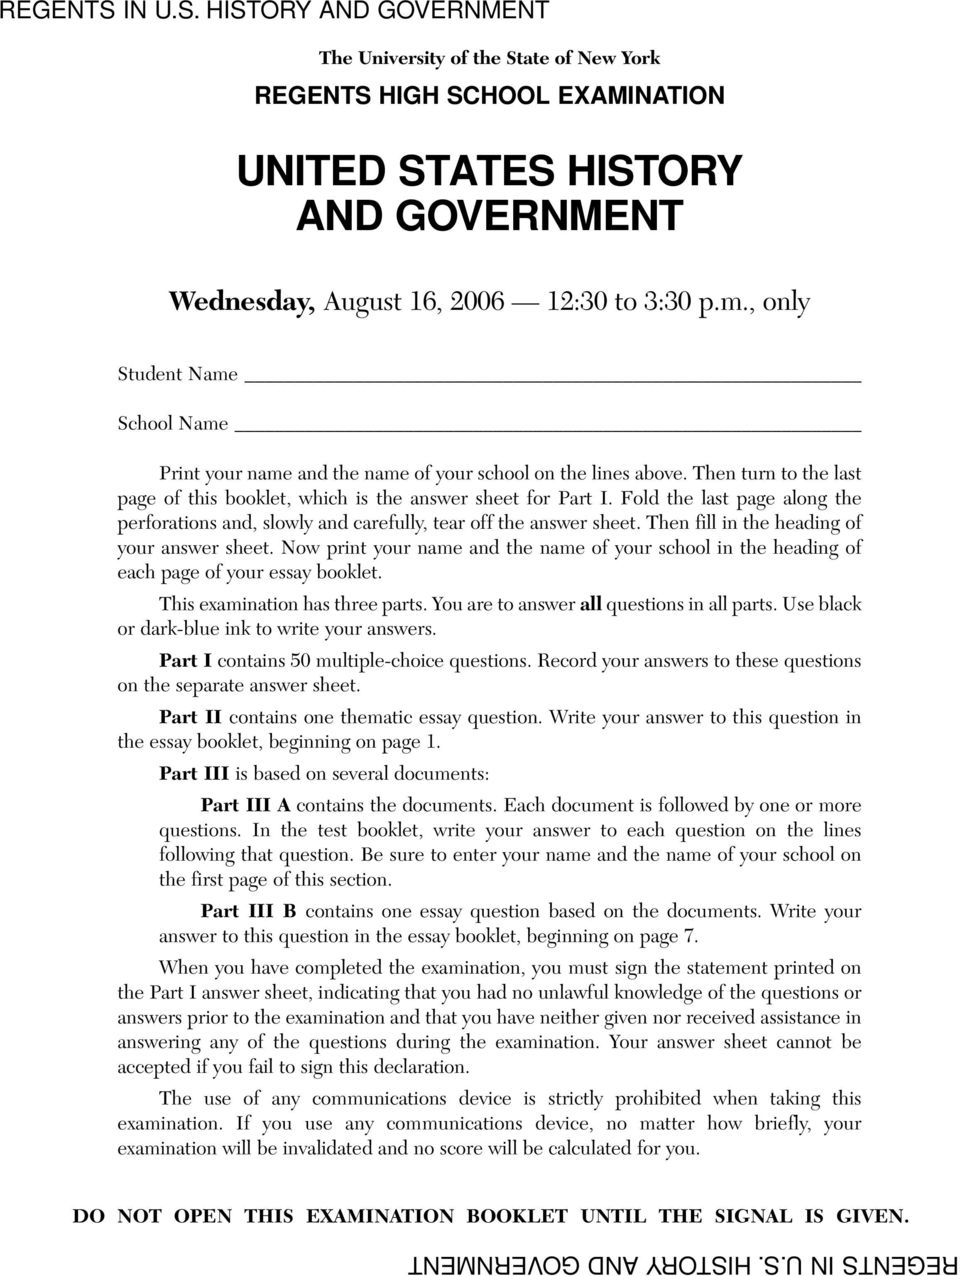 united states history and government pdf fold the last page along the perforations and slowly and carefully tear off the